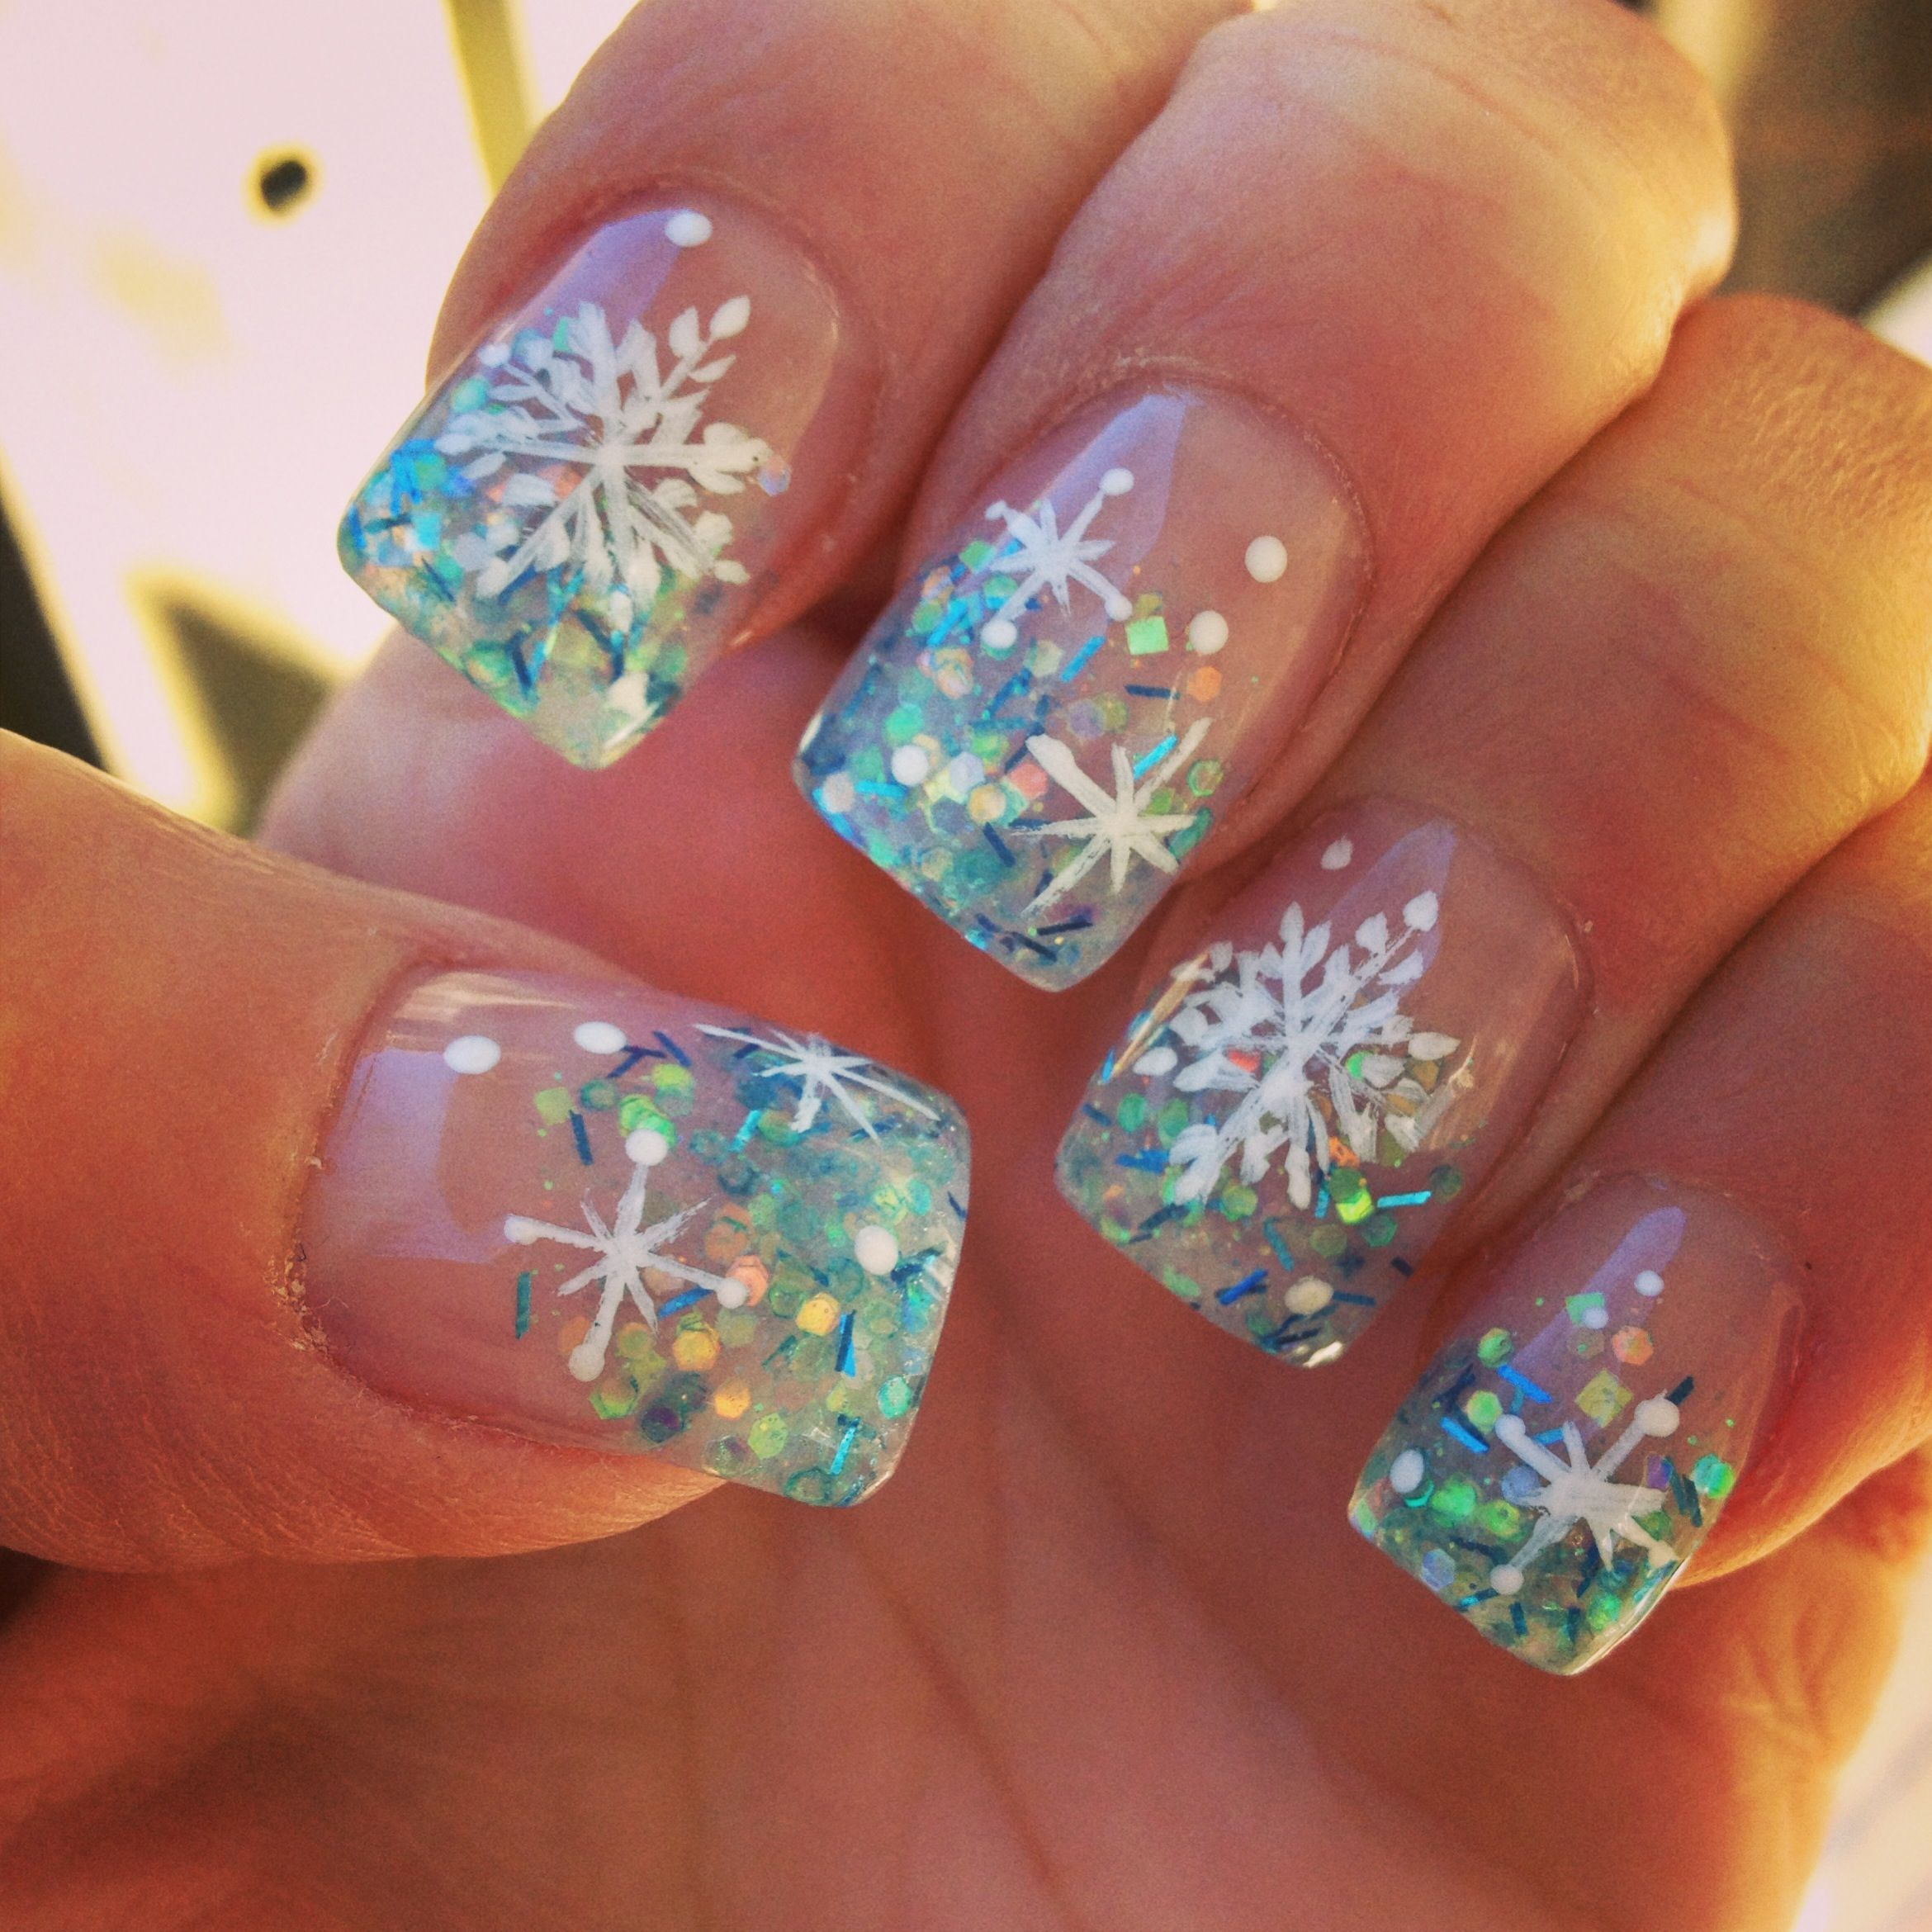 Best Christmas Gel Nails: Best Nail Lady Ever ! Hand Painted Snow Flakes @ Nails For